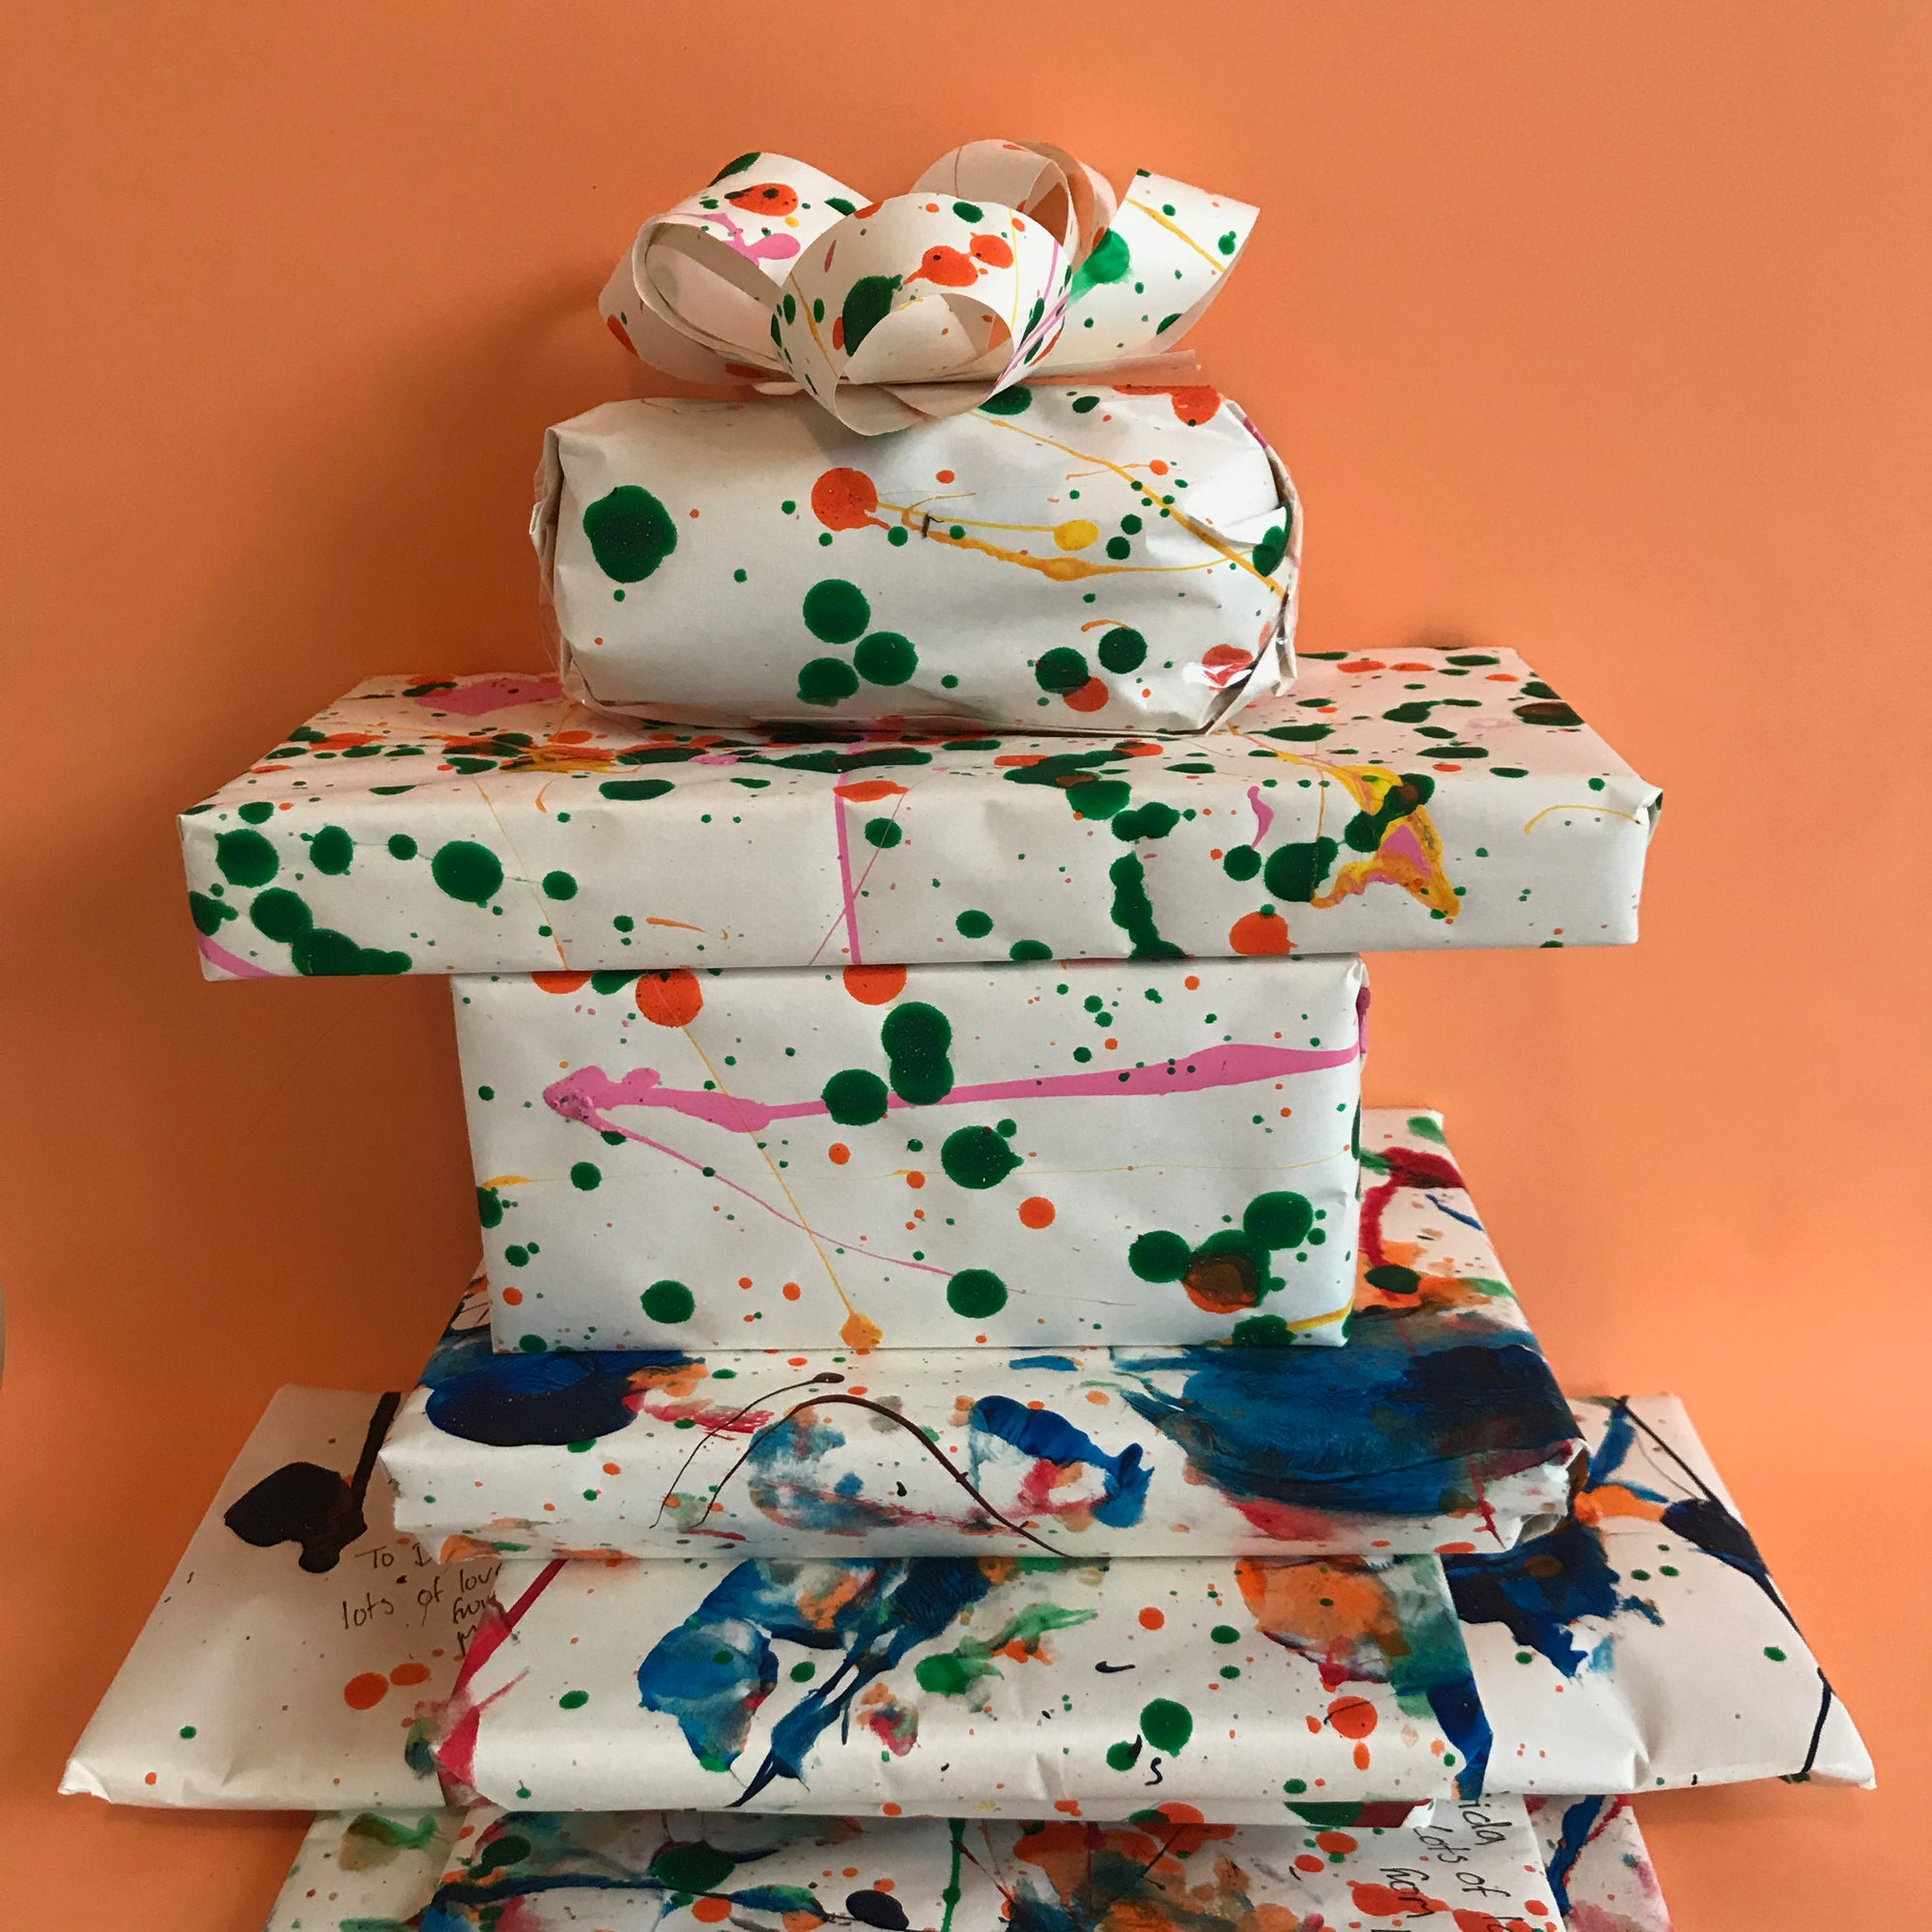 Childrens art homemade wrapping paper